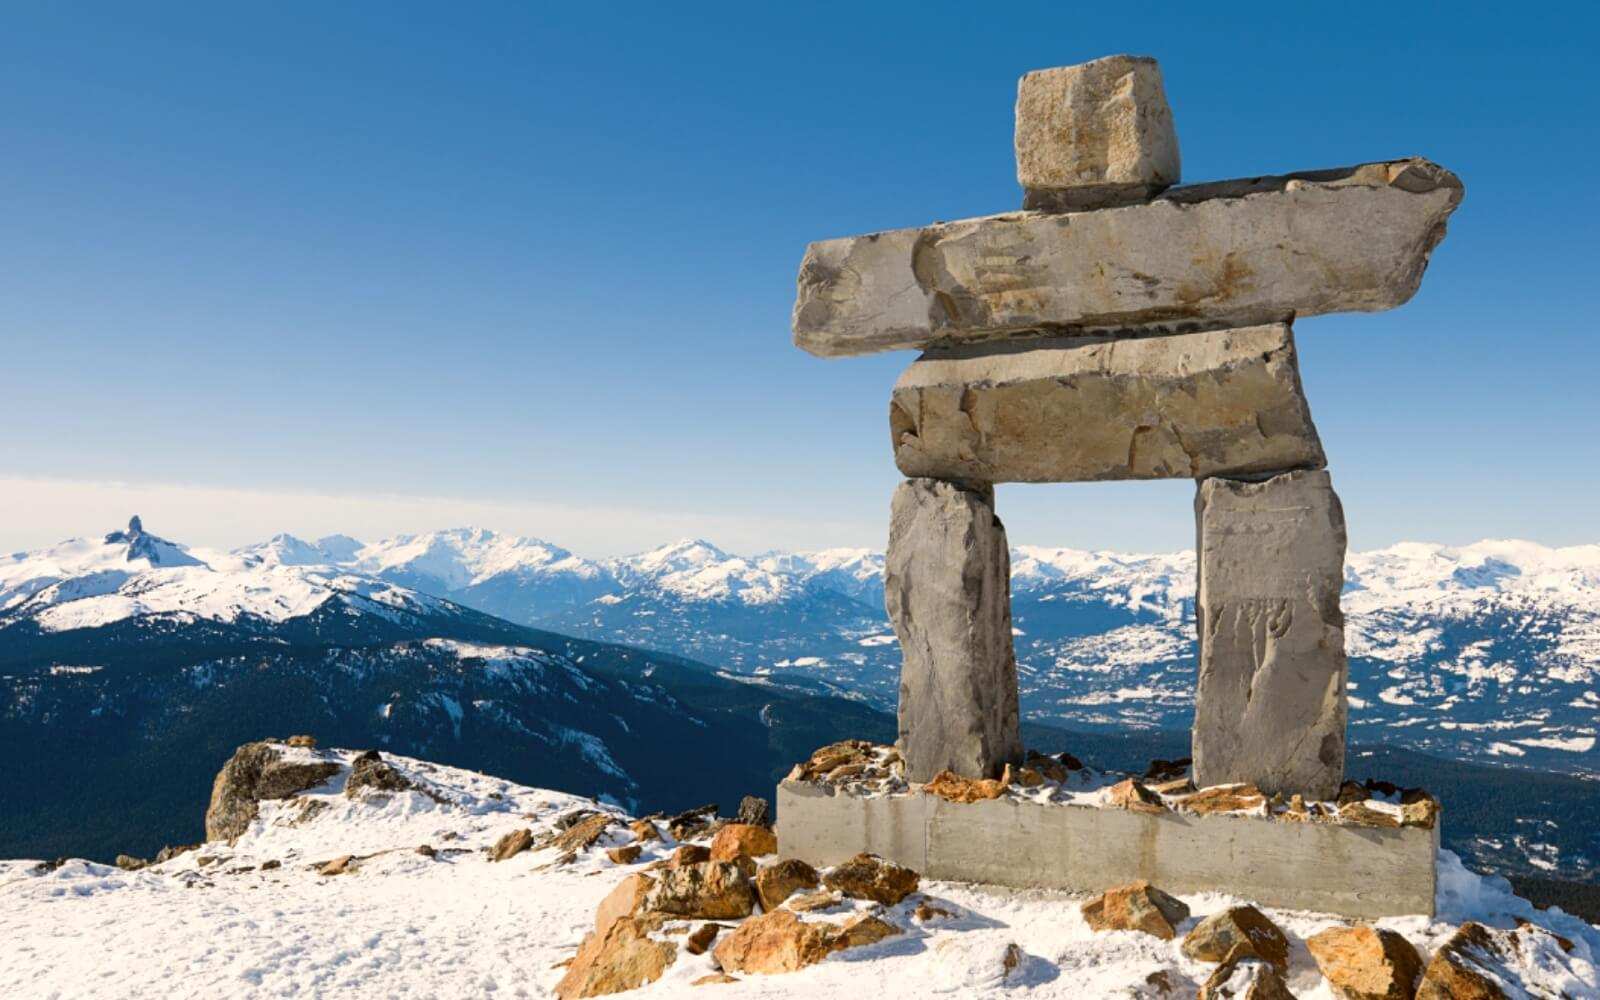 The Inukshuk at the top of Whistler Mountain